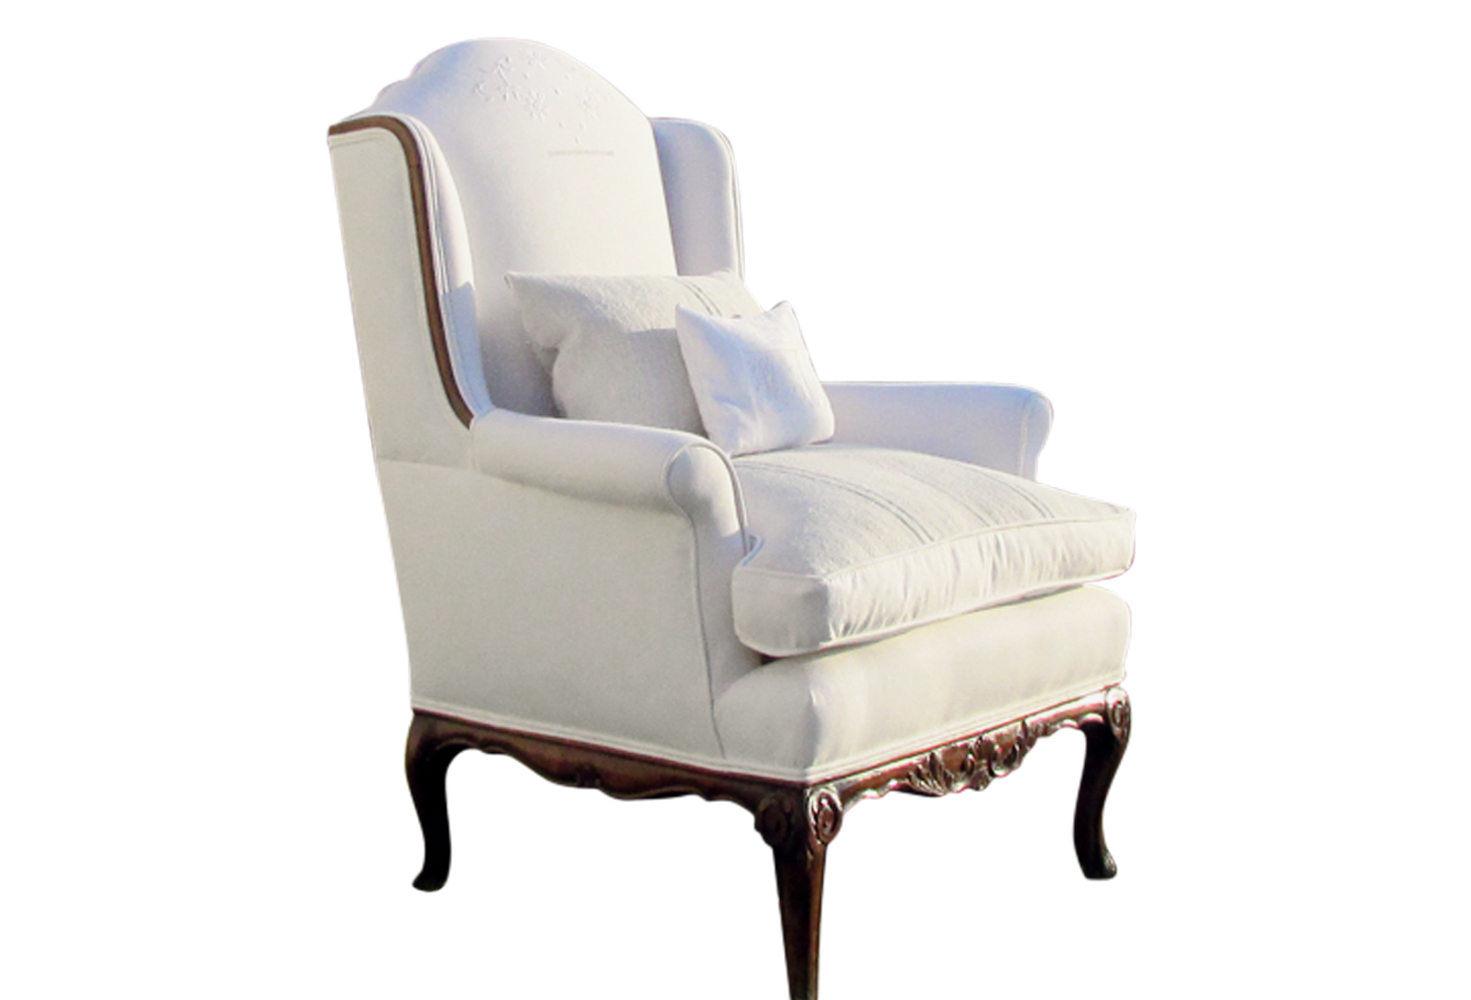 Dazzling wing back chair with Solid Strong wood Furniture Design for Dining chair and Living Room Chair Ideas